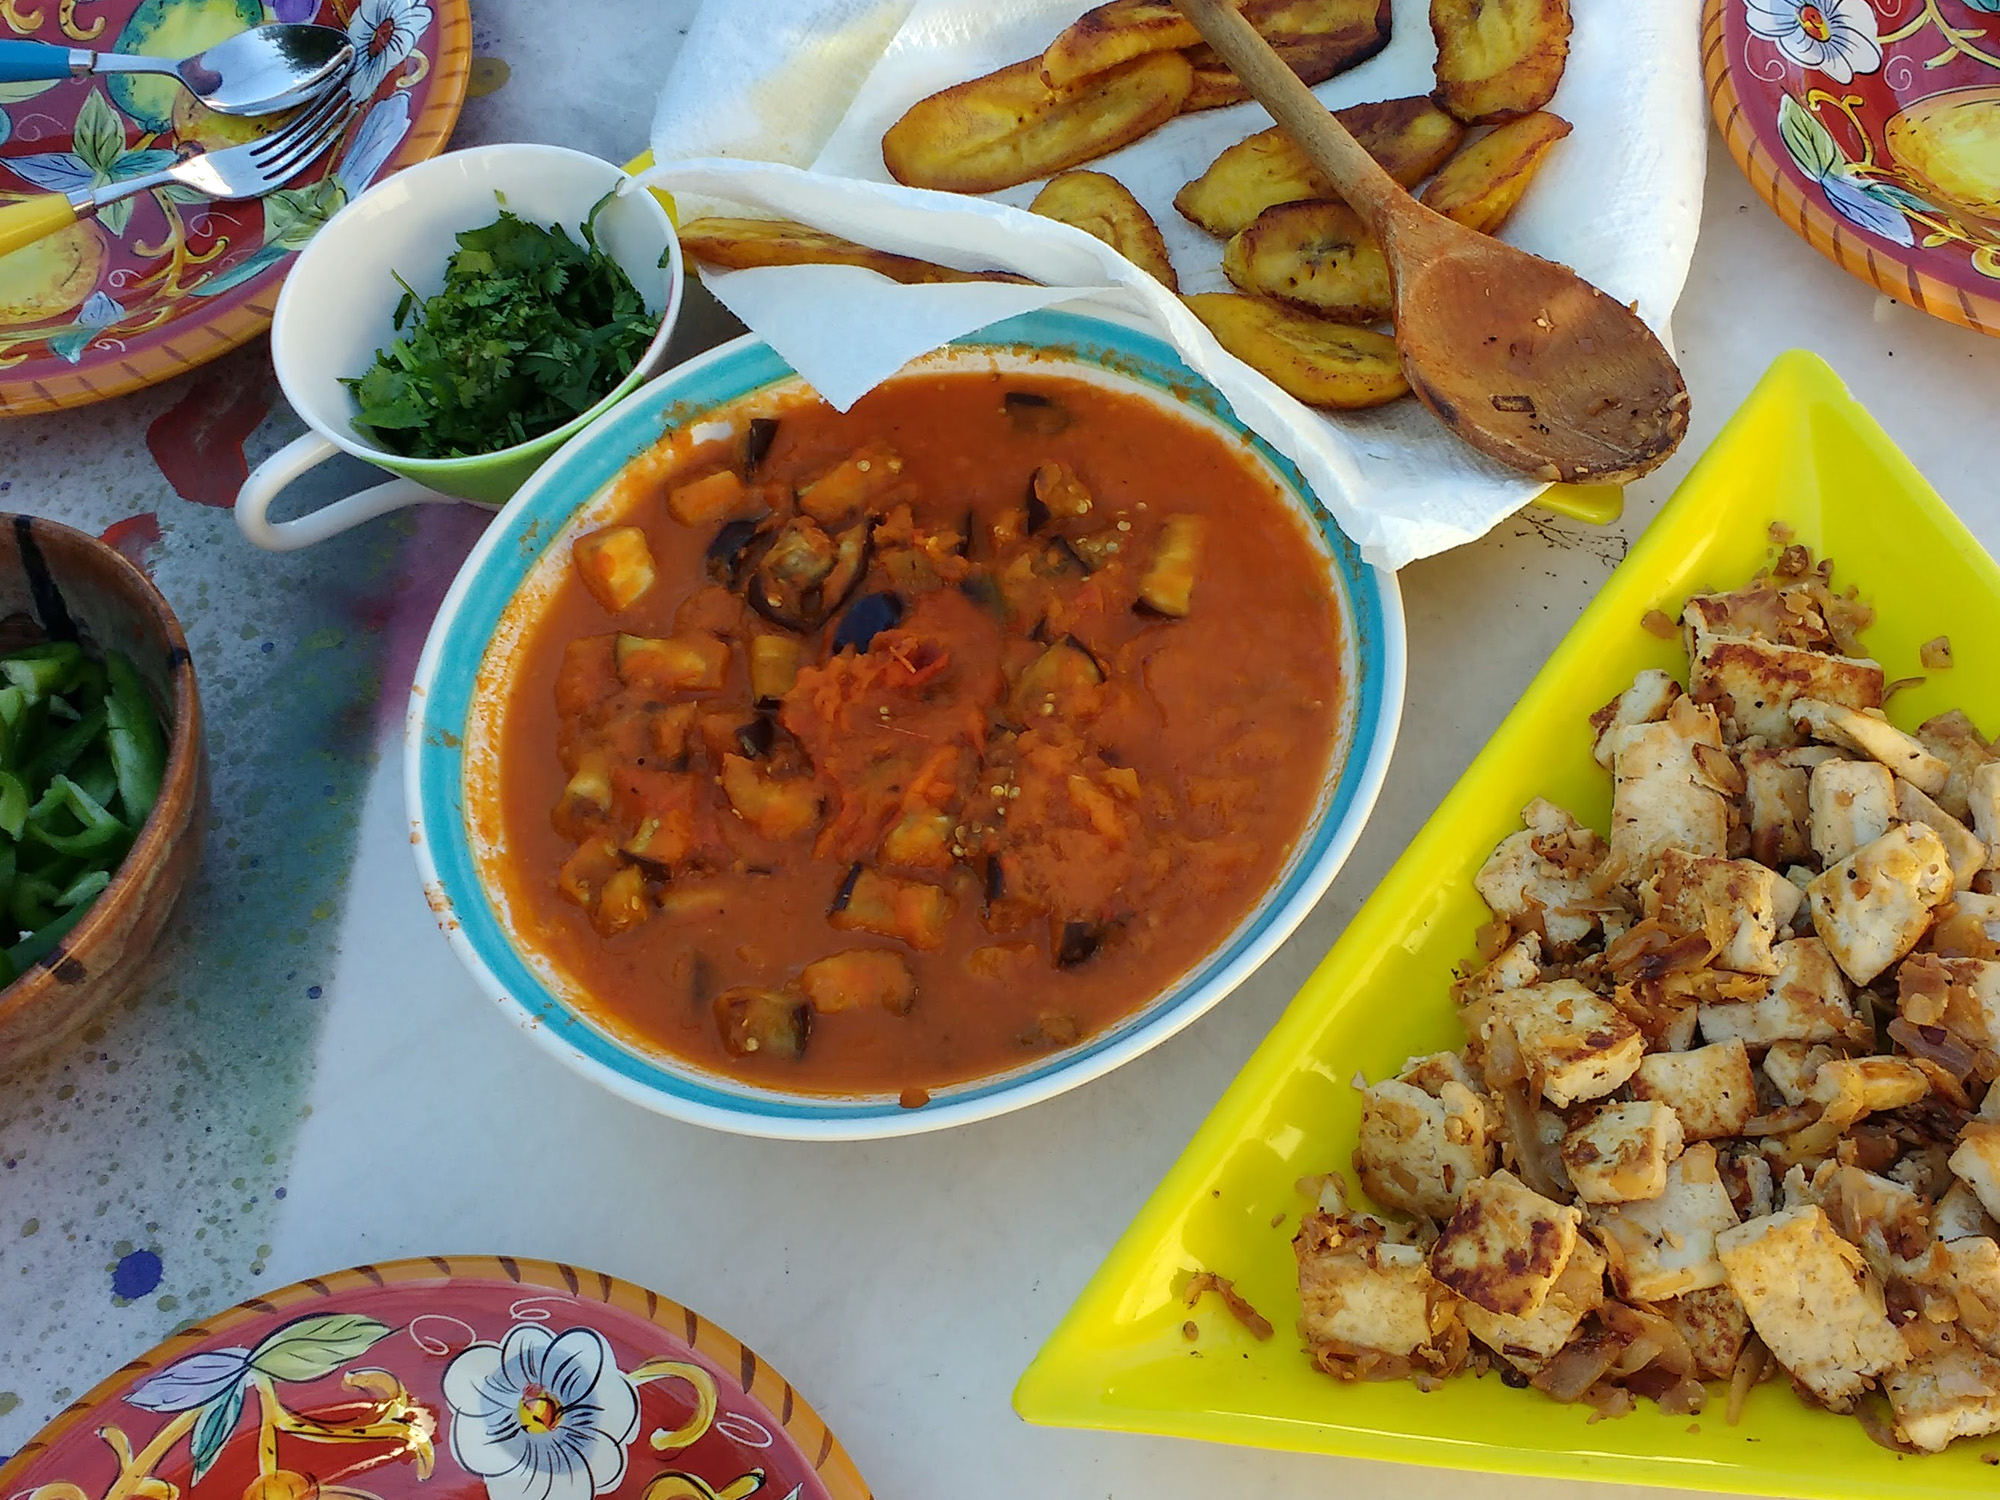 Close-up of dishes of food at an outdoor table